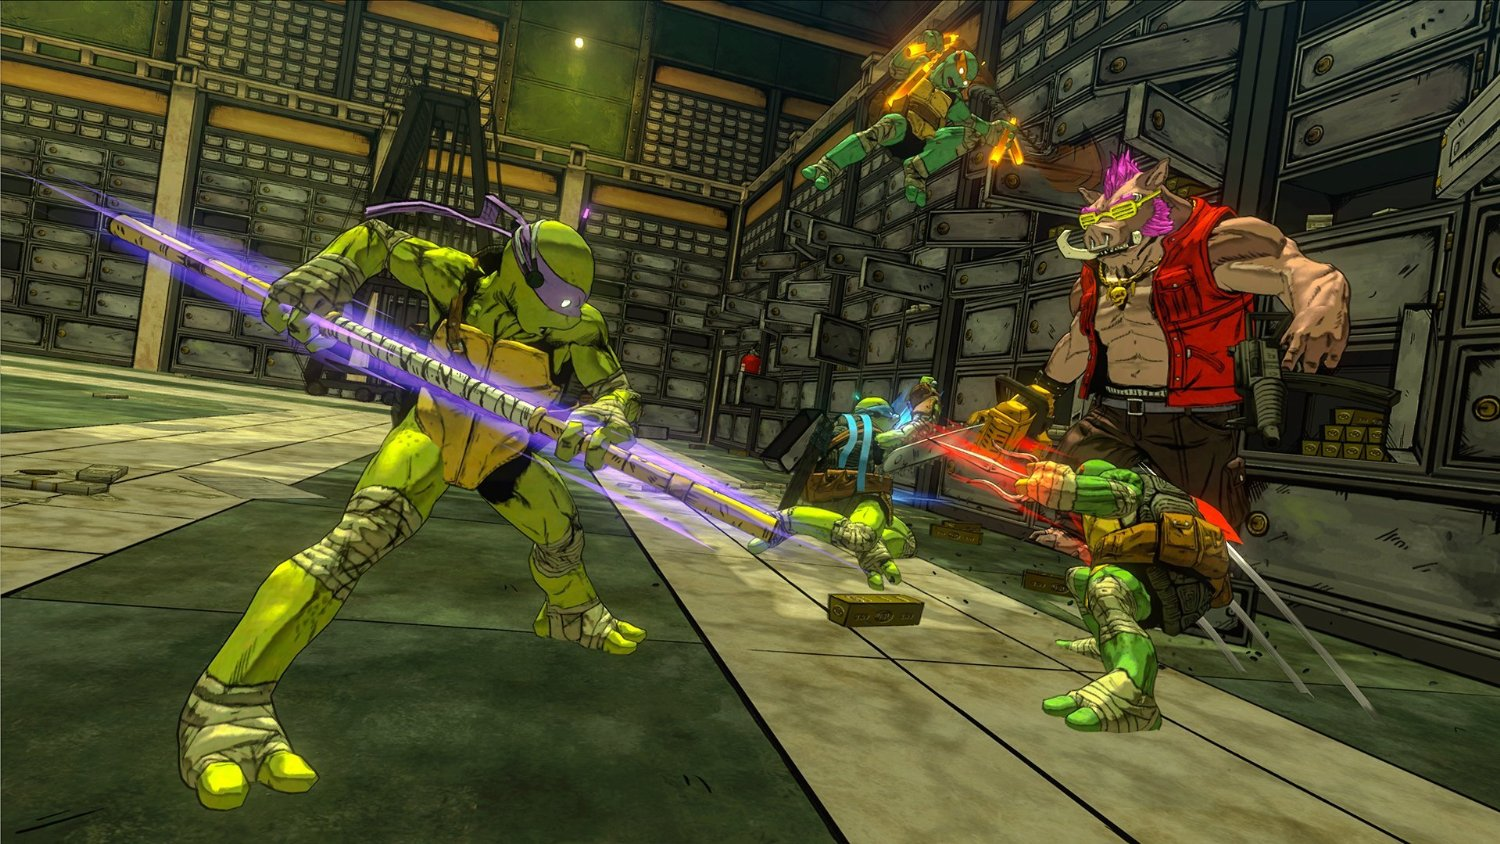 : TEENAGE MUTANT NINJA TURTLES - MUTANTS IN MANHATTAN (PC, PS4, PS3